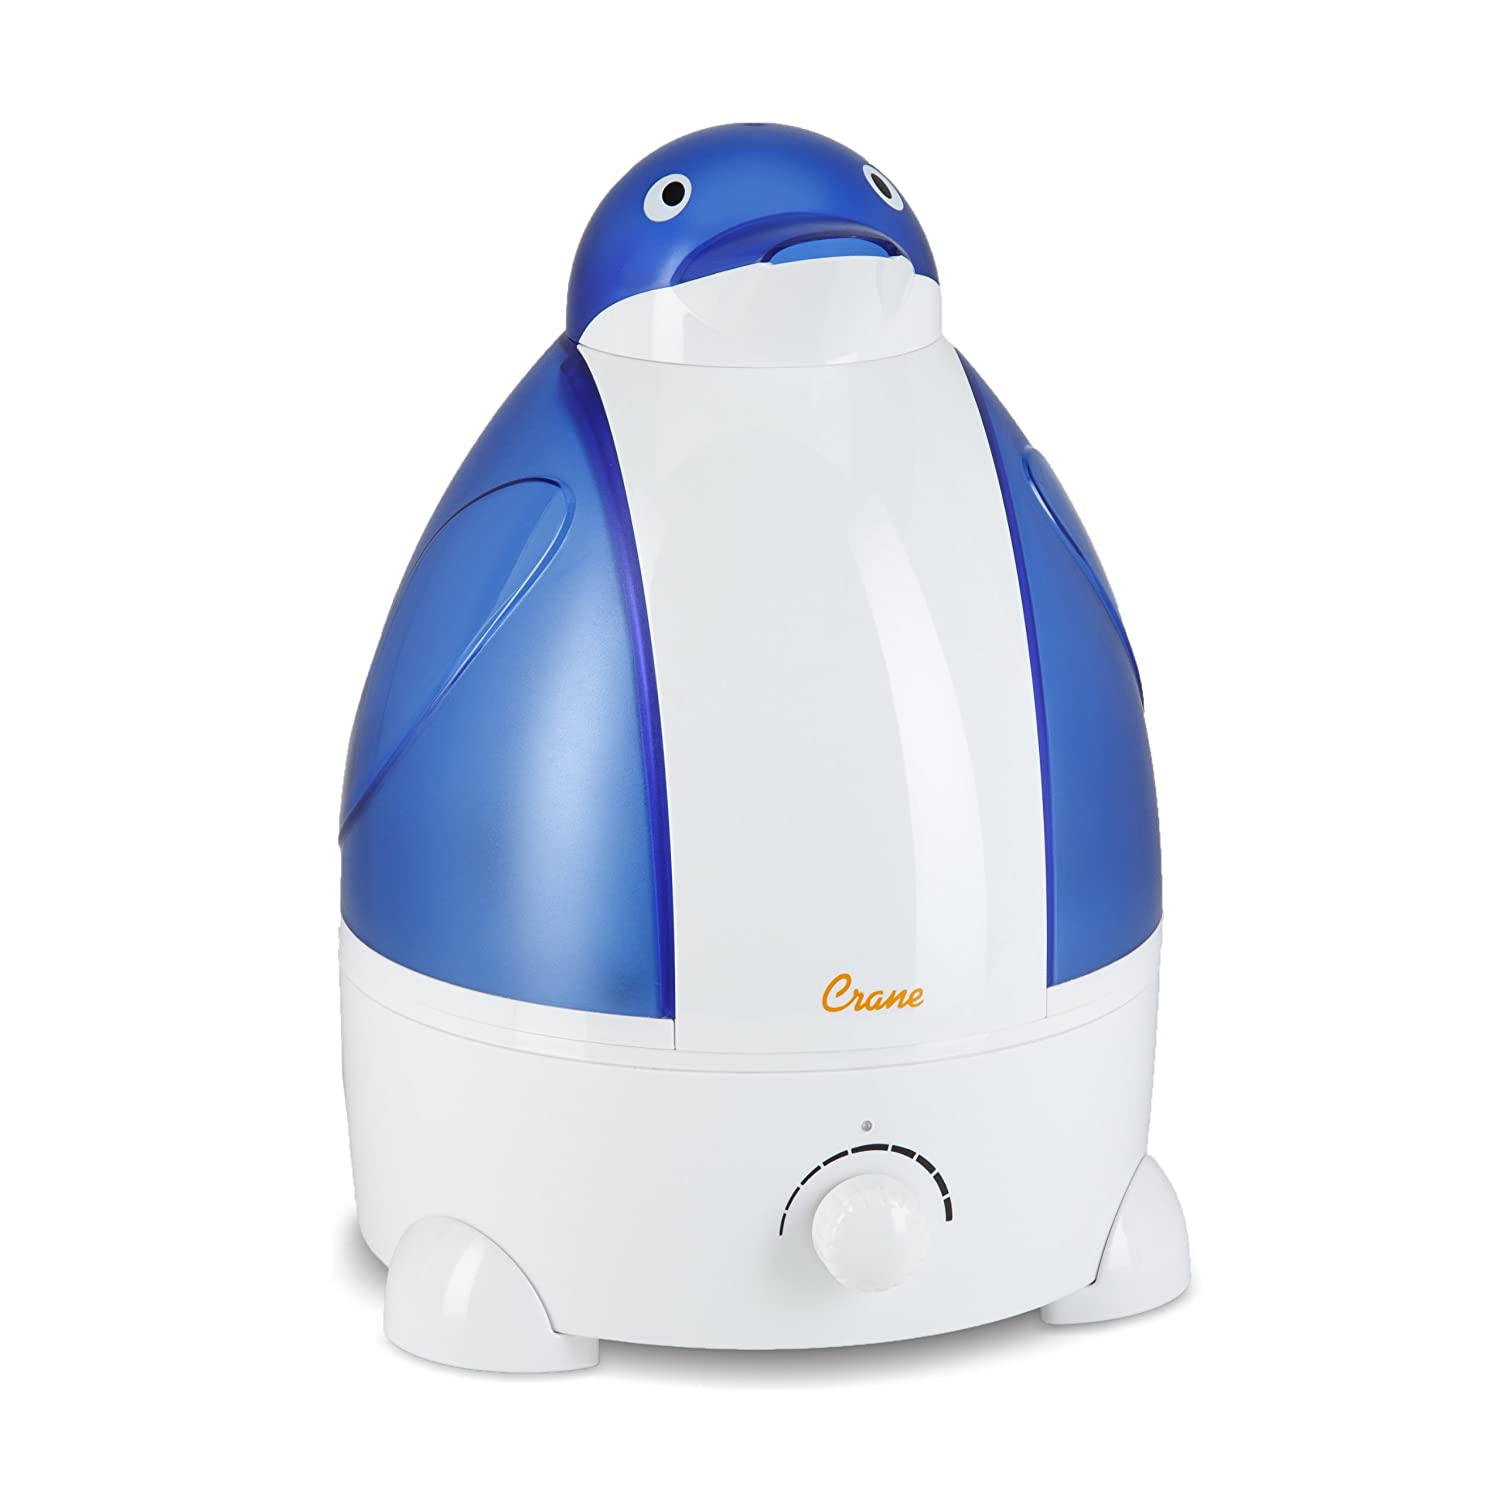 Crane Ultrasonic Humidifier EE-865-FFP: The Perfect Treat for your Little Ones